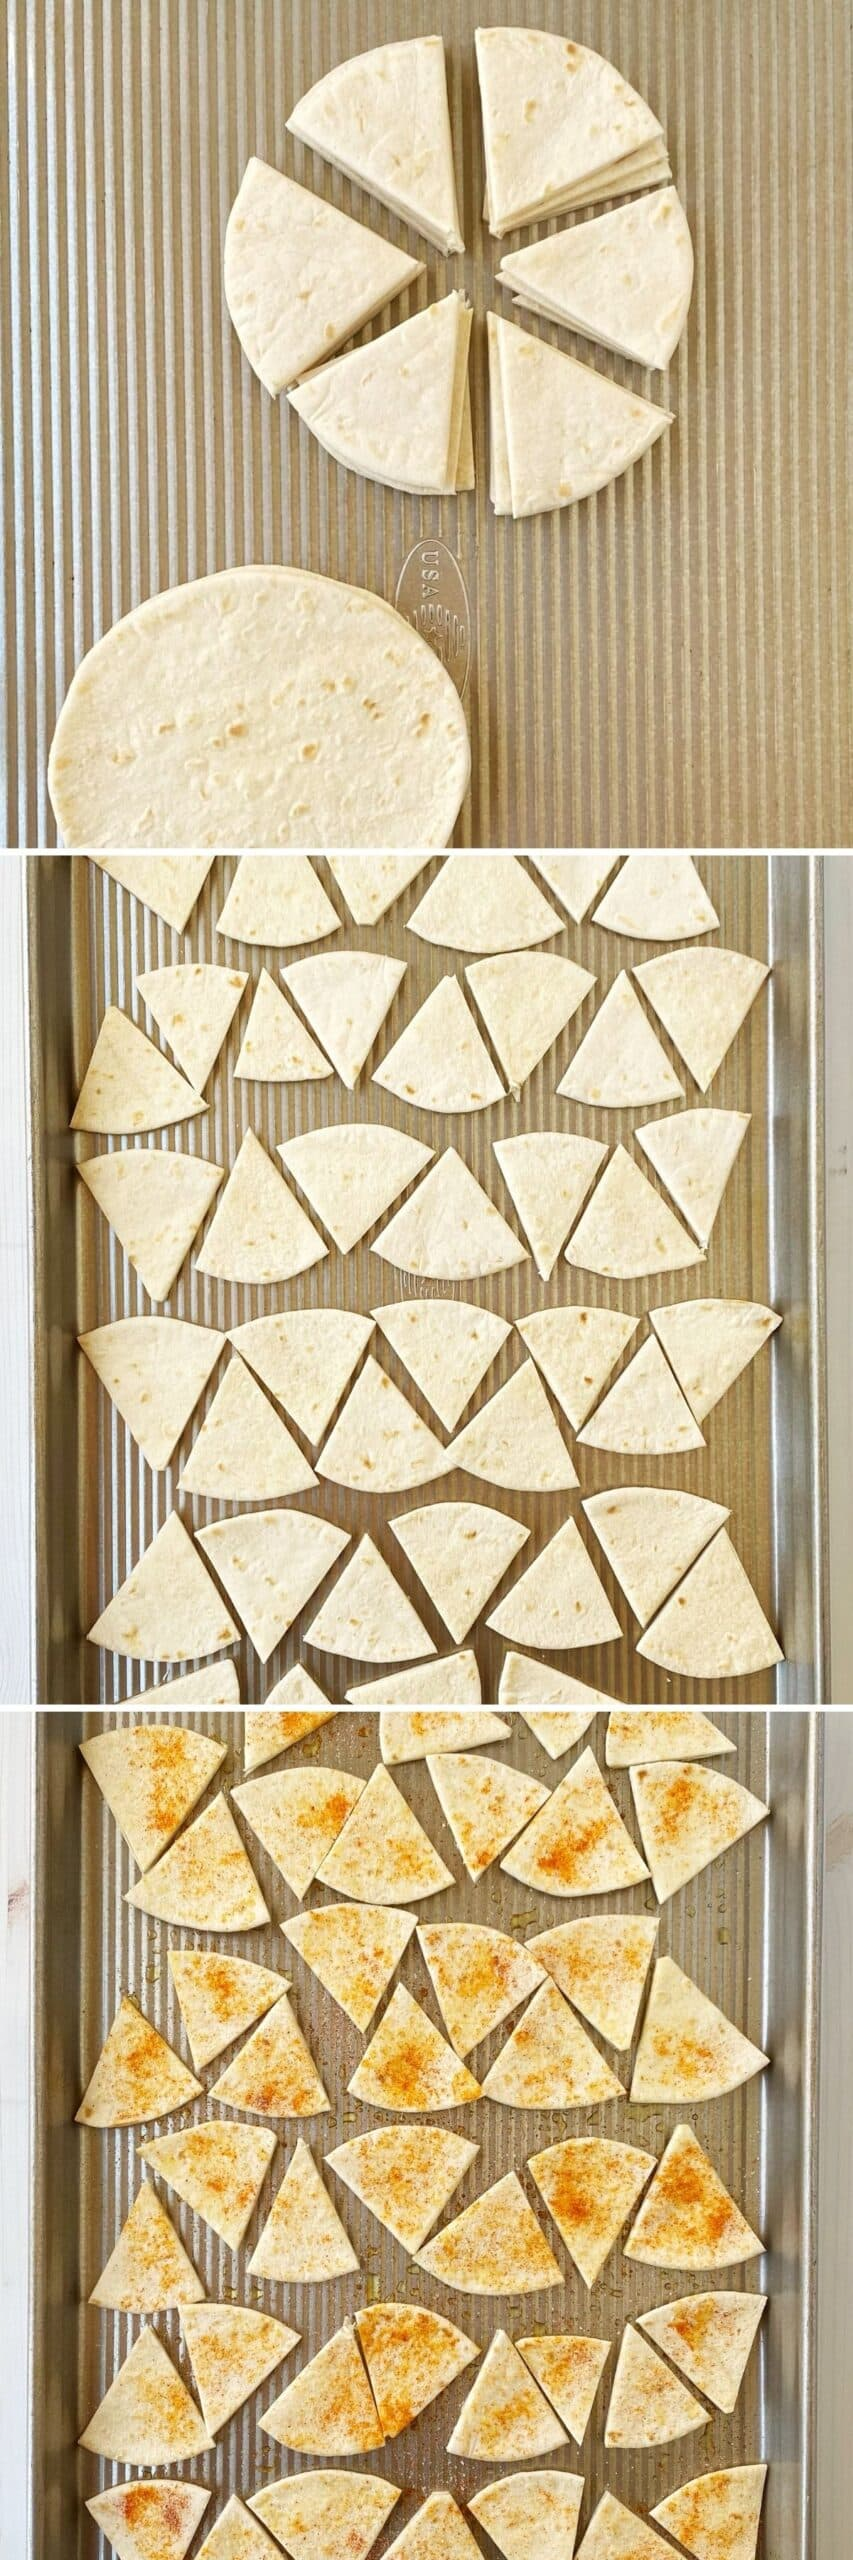 tortillas cut into wedges, arranged on a baking sheet, and sprinkled